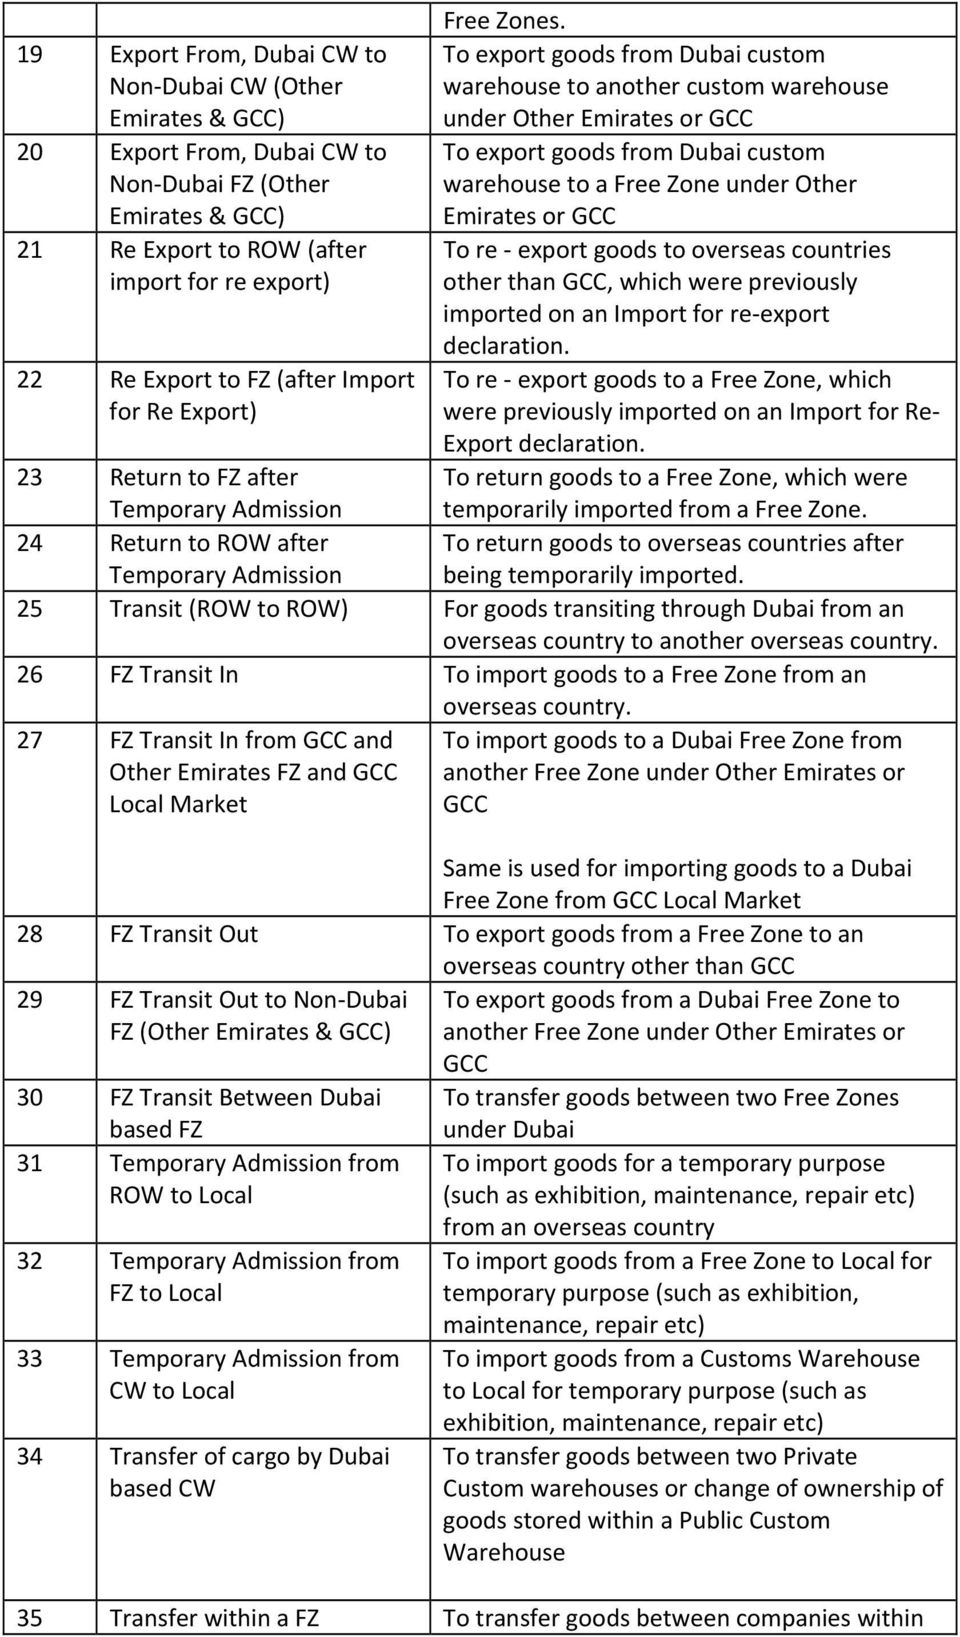 Dubai FZ (Other Emirates & GCC) To export goods from Dubai custom warehouse to a Free Zone under Other Emirates or GCC 21 Re Export to ROW (after import for re export) To re export goods to overseas